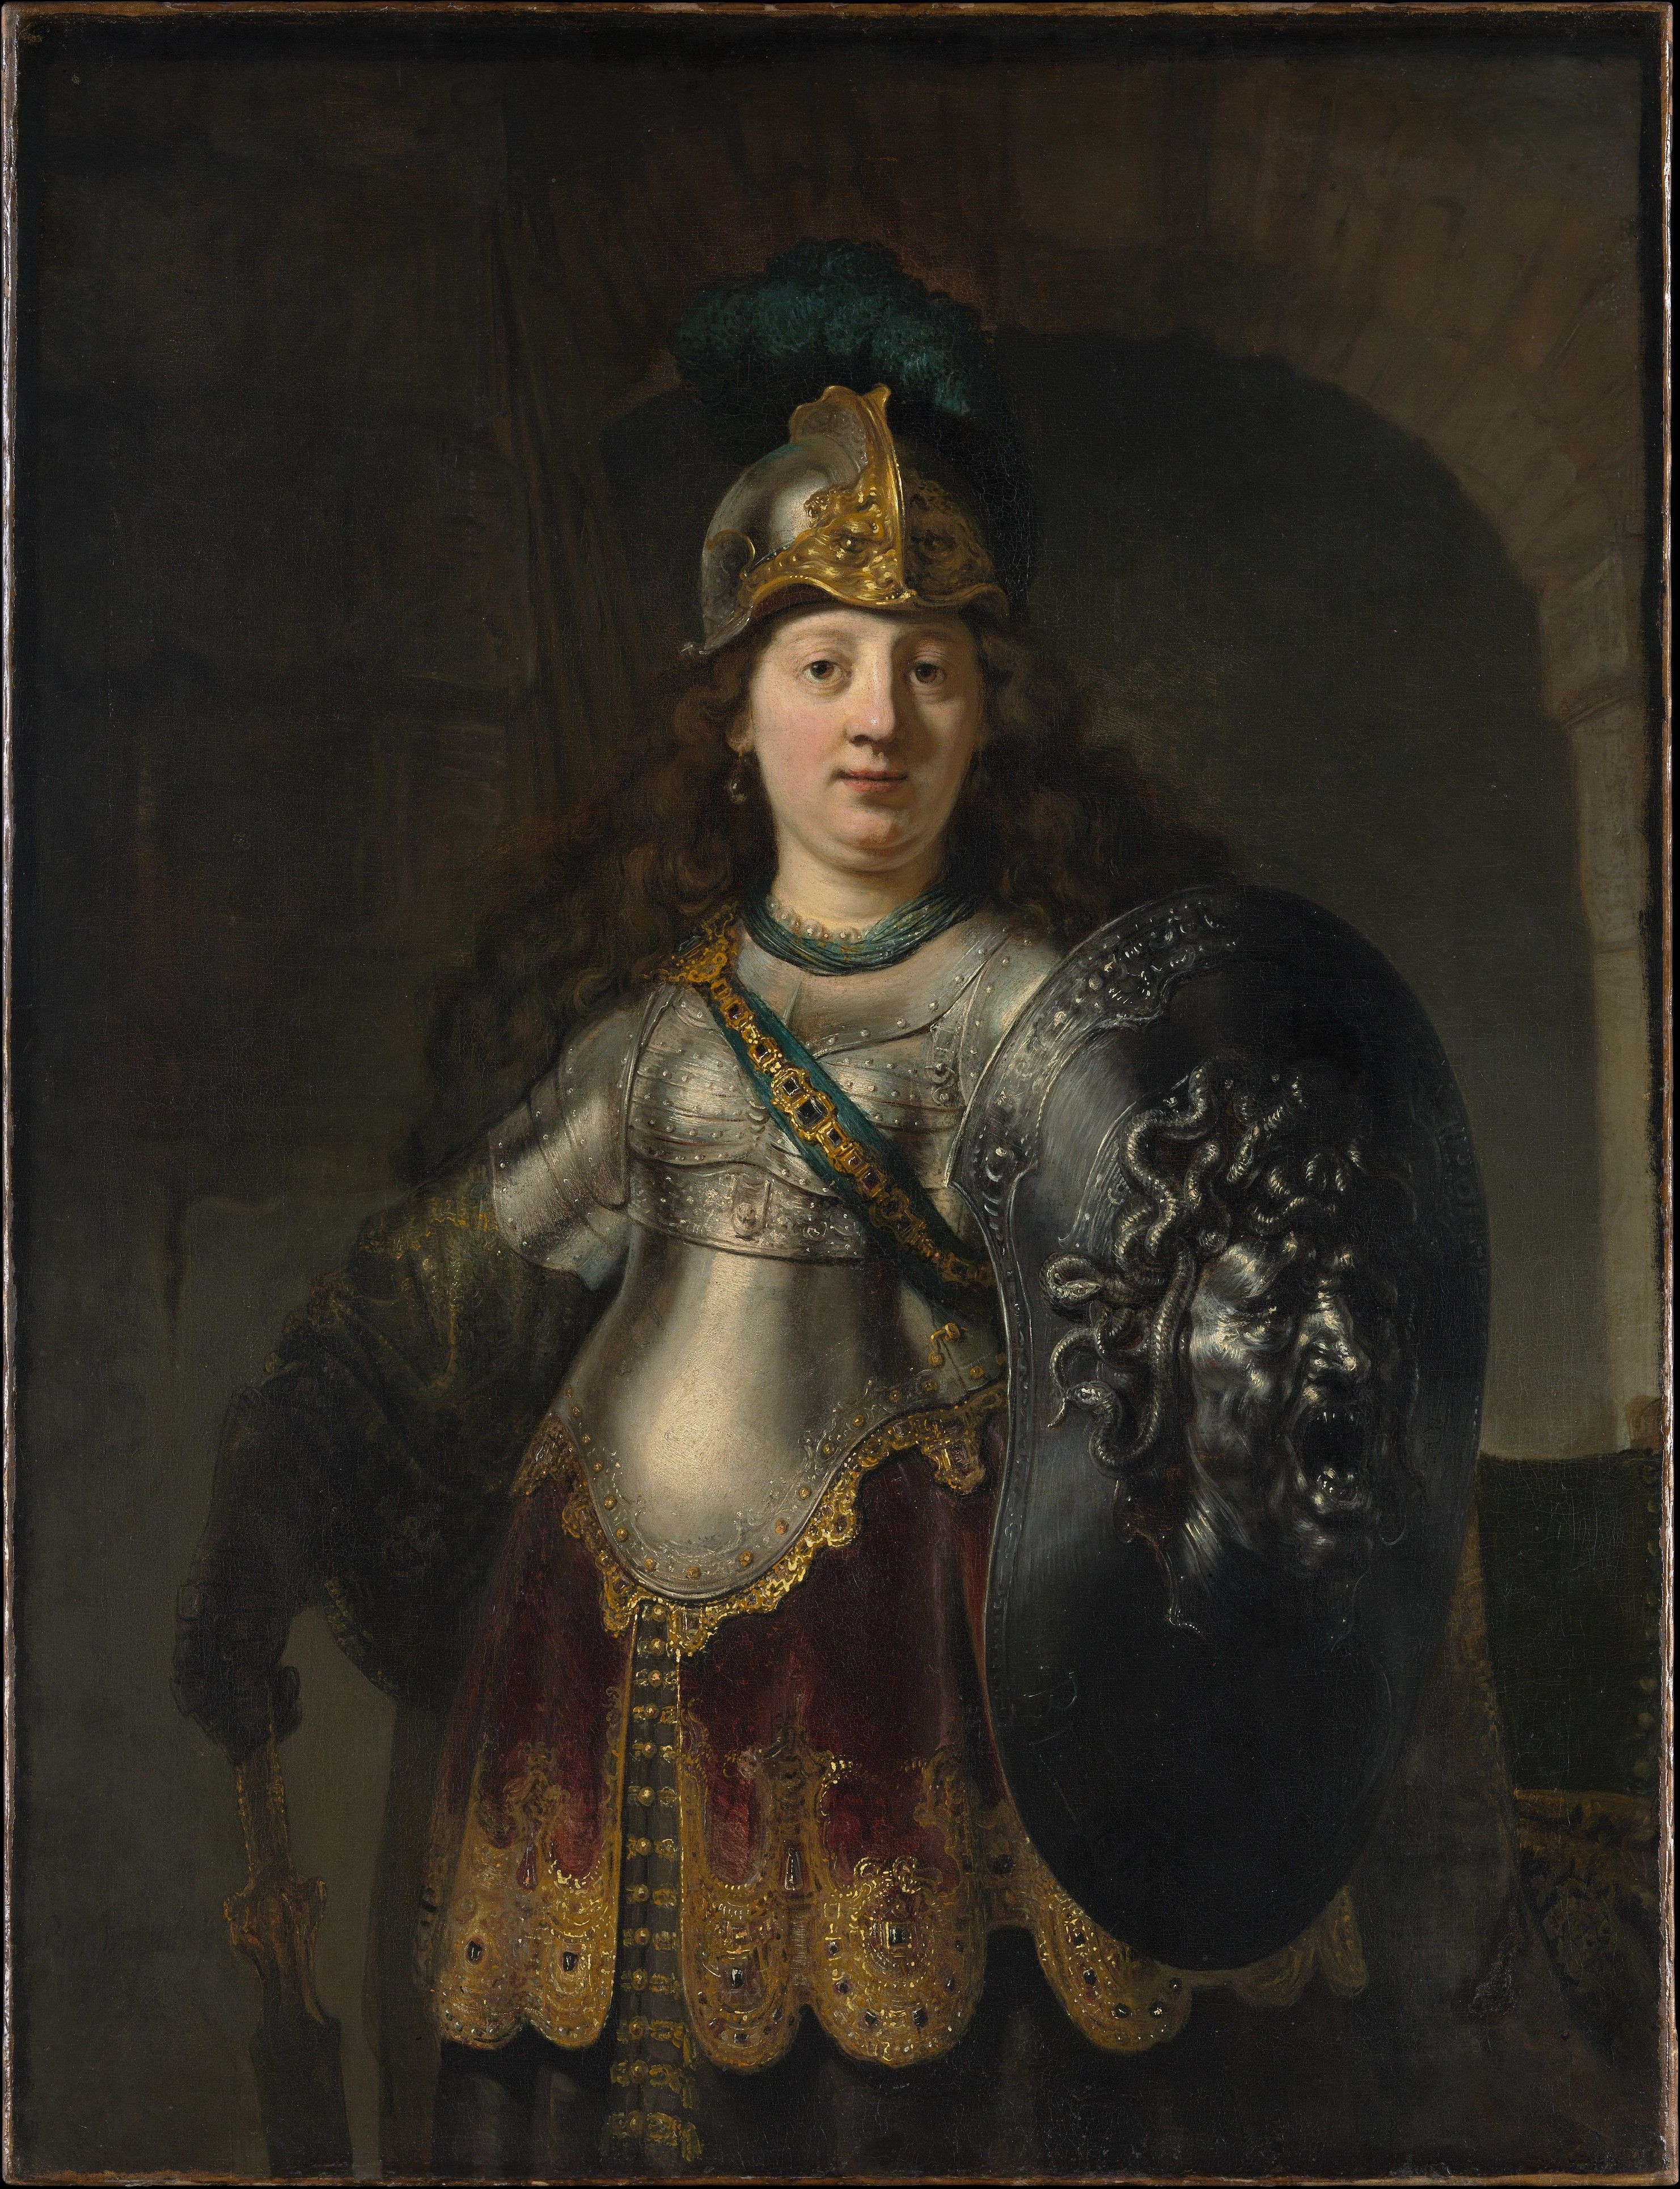 Rembrandt van Rijn, Bellona, 1633 oil on canvas, 126 x 96.5 cm, The Metropolitan Museum of Art, New York, The Friedsam Collection, Bequest of Michael Friedsam, 1931, 32.100.23, www.metmuseum.org